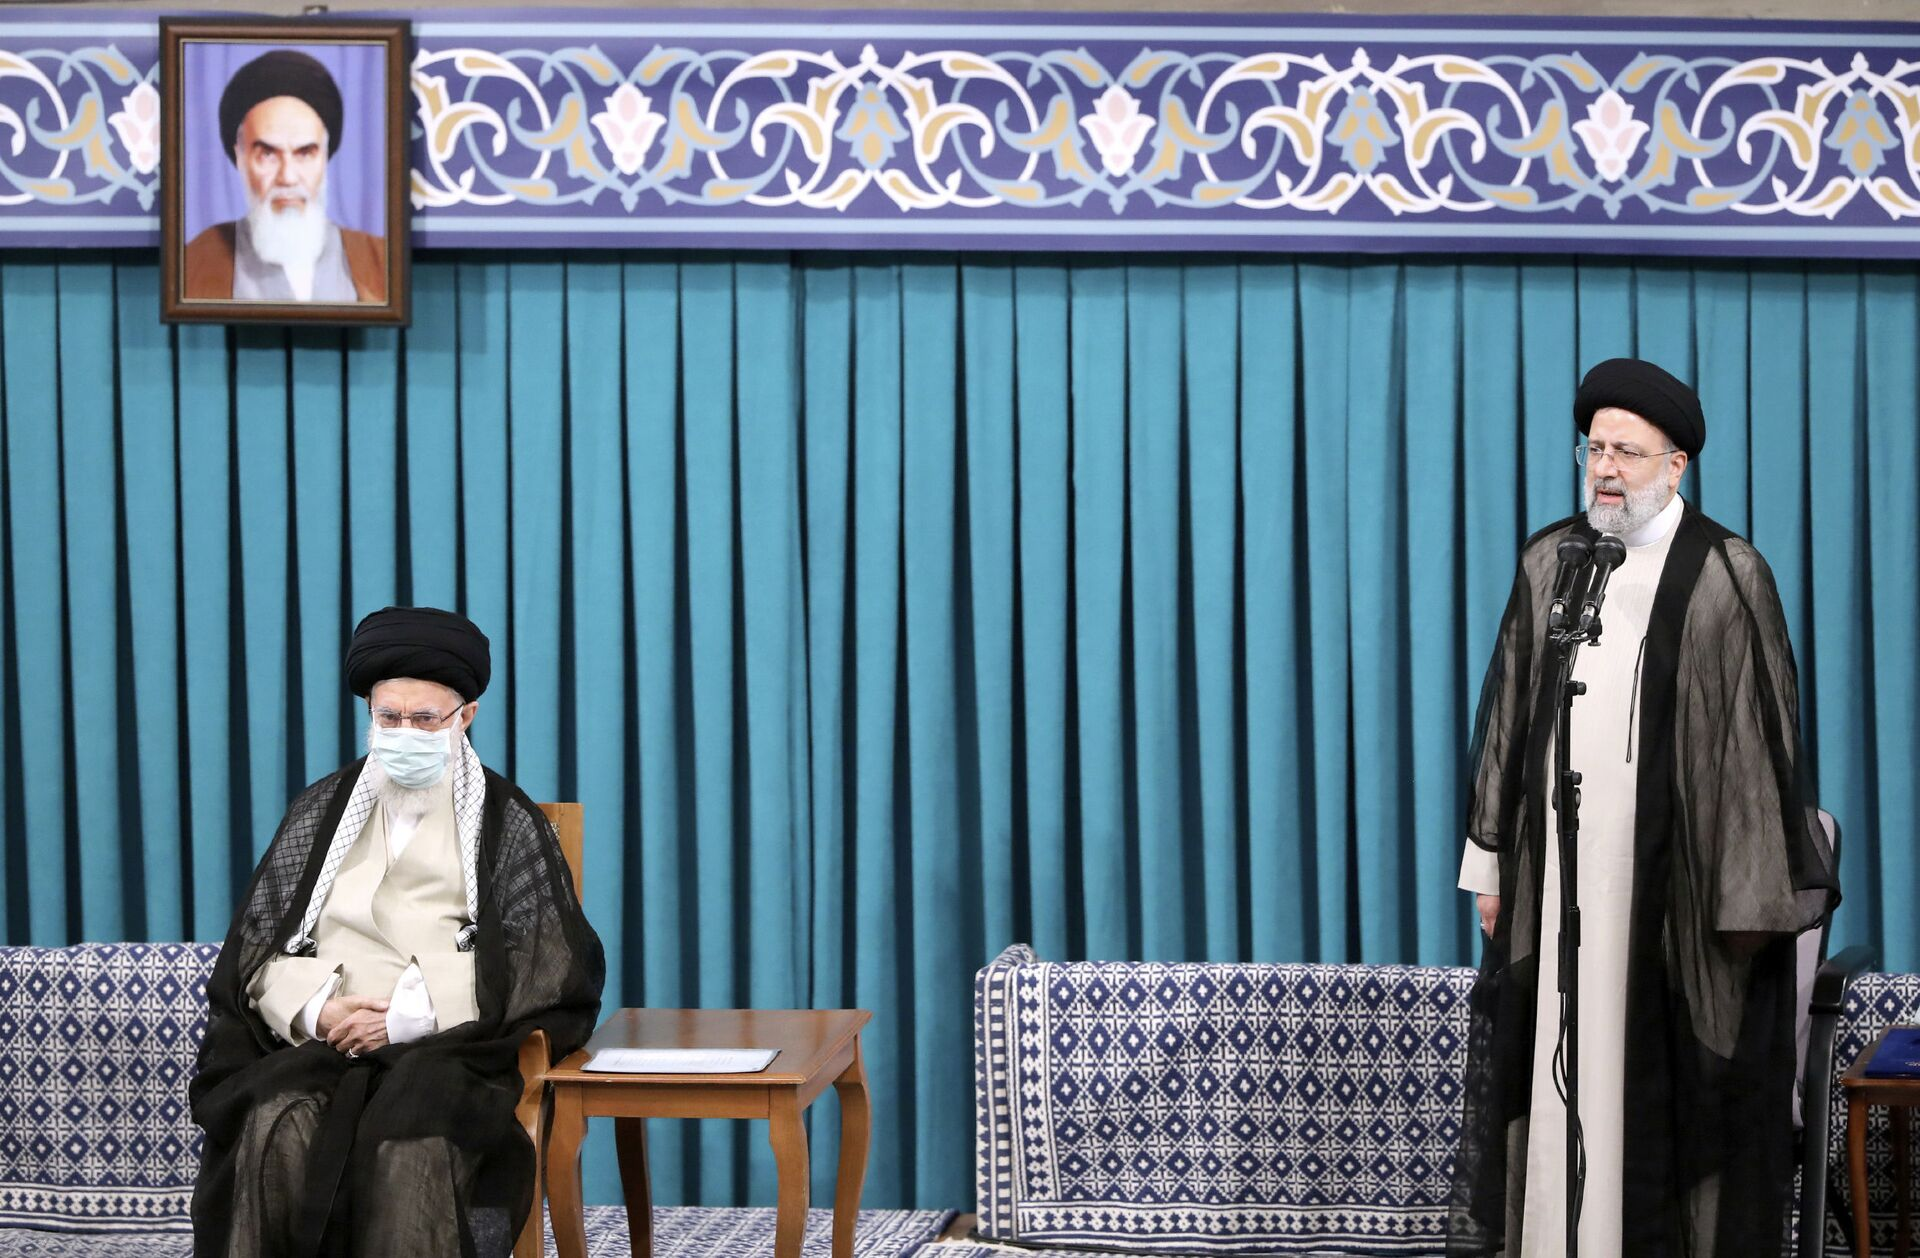 In this photo released by an official website of the office of the Iranian supreme leader, newly elected President Ebrahim Raisi, right, speaks after receiving official seal of approval of Supreme Leader Ayatollah Ali Khamenei, left, in an endorsement ceremony in Tehran, Iran, Tuesday, Aug. 3, 2021. - Sputnik International, 1920, 07.09.2021